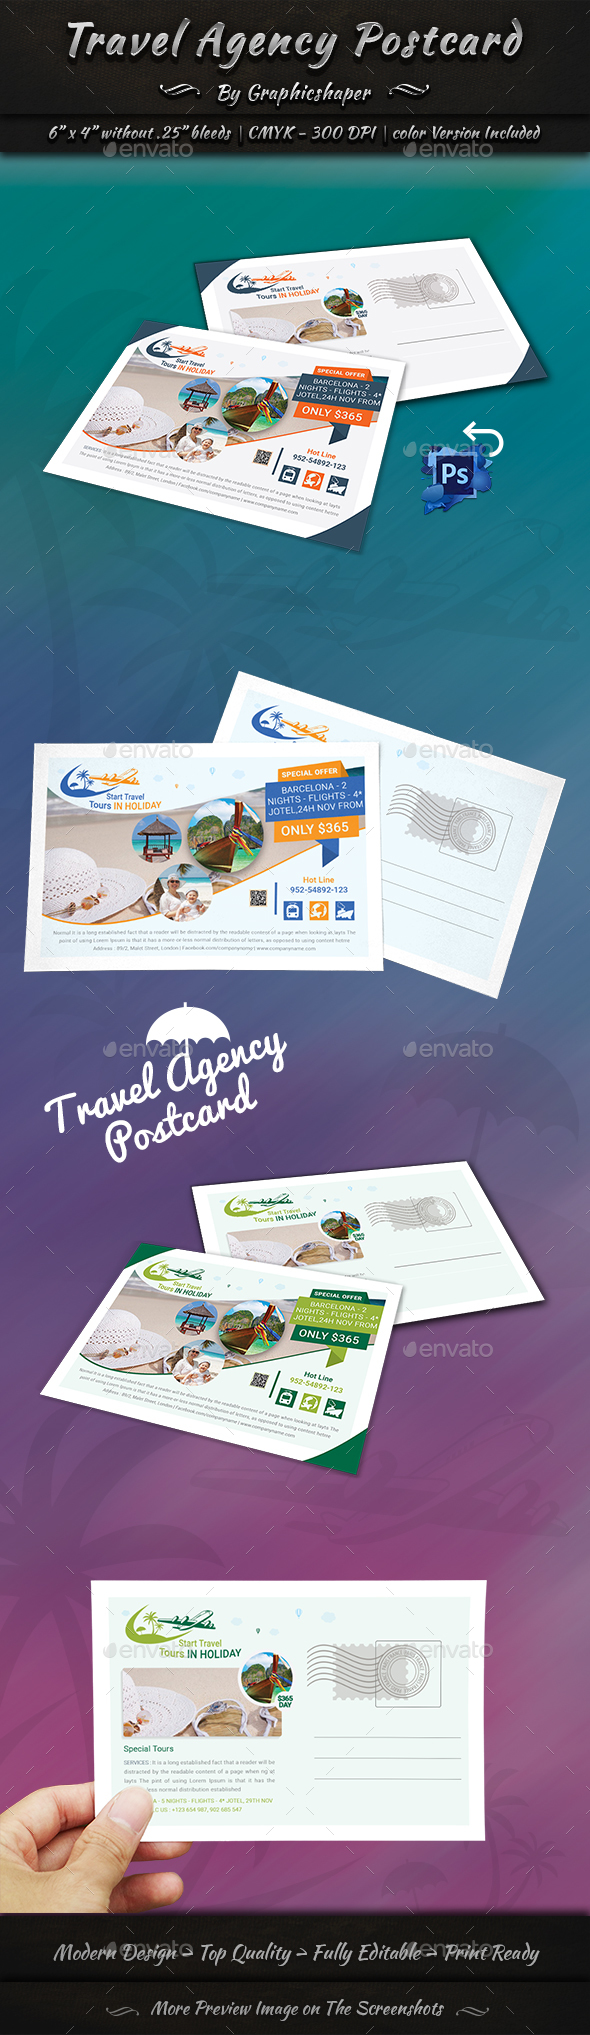 Travel Agency Postcard - Cards & Invites Print Templates